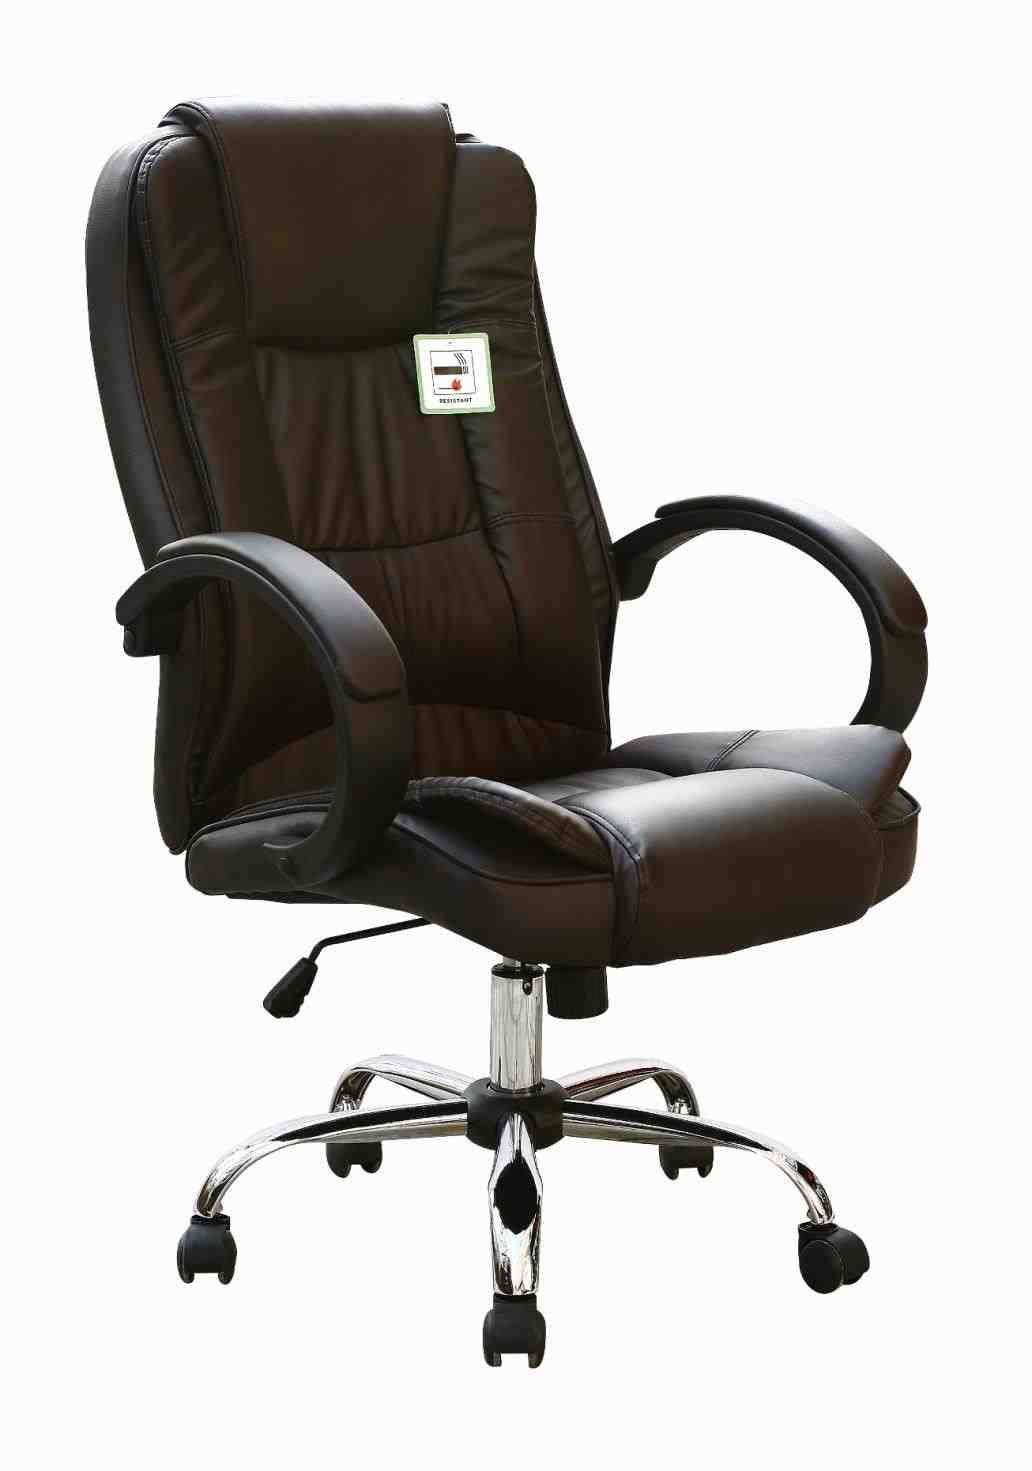 Office Chairs Singapore With